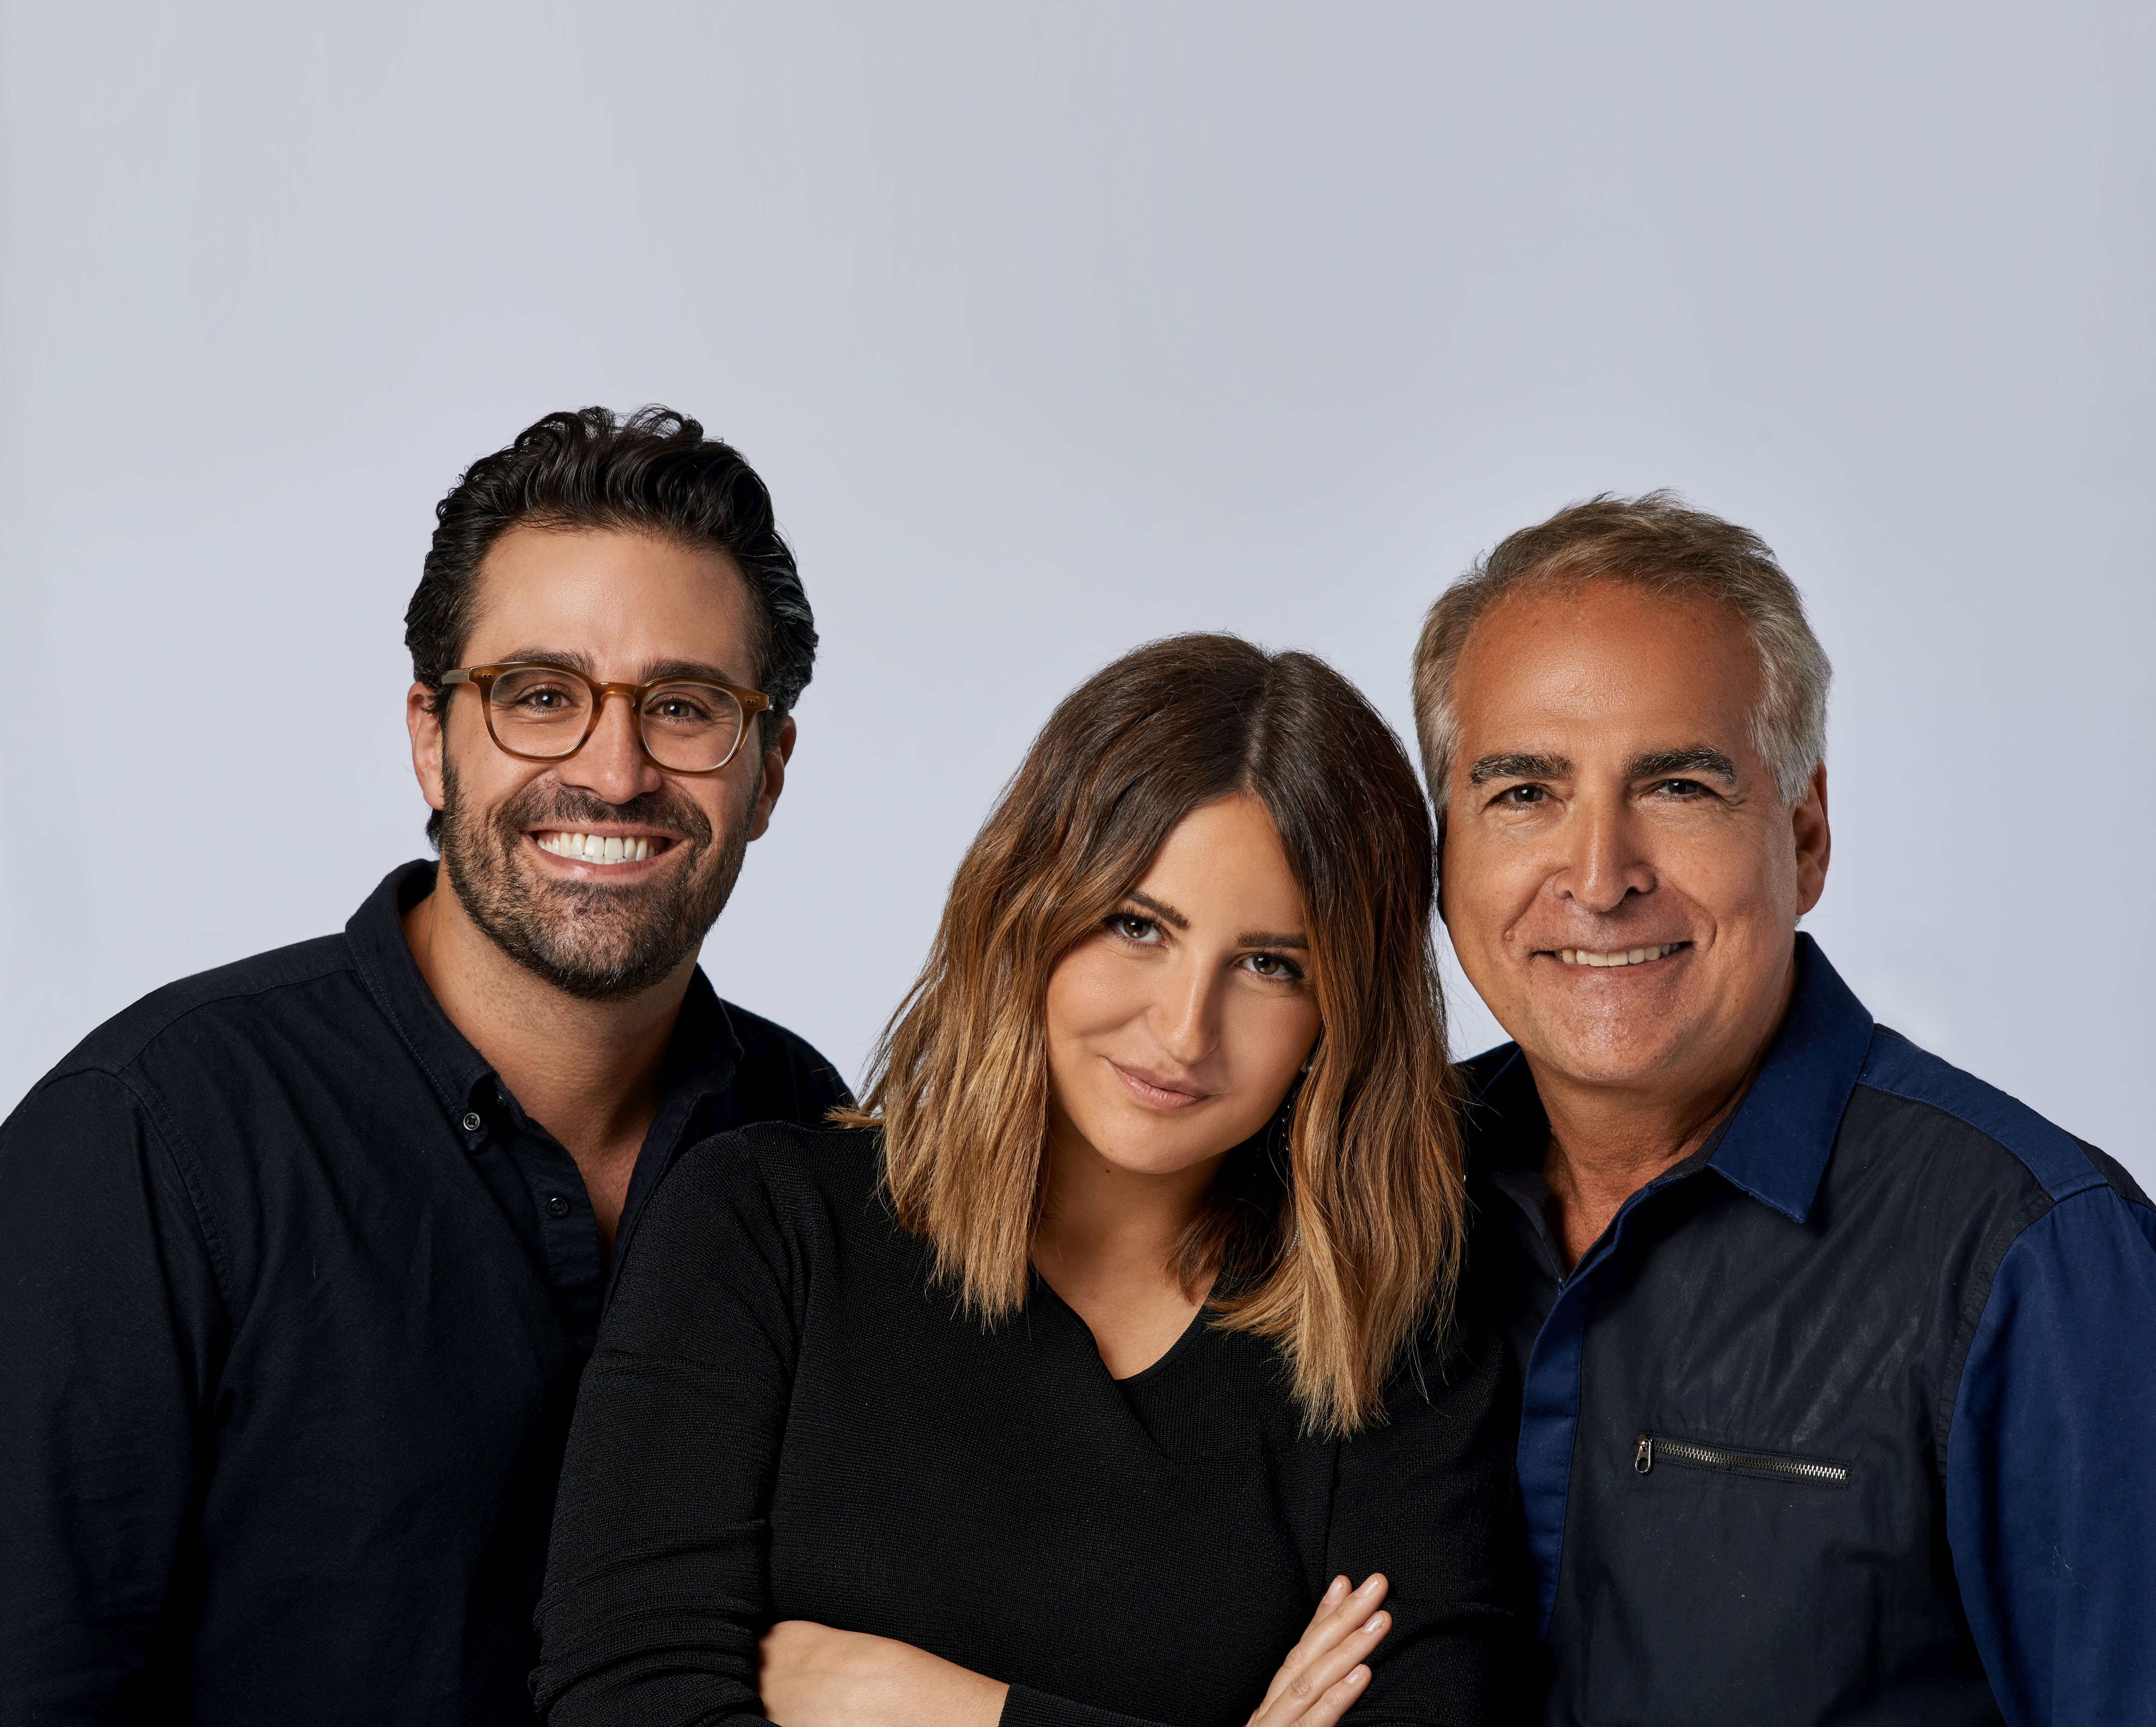 Philippe, Olivia and Charles Ifergan of the Charles Ifergan Salon, with three locations in Chicago.